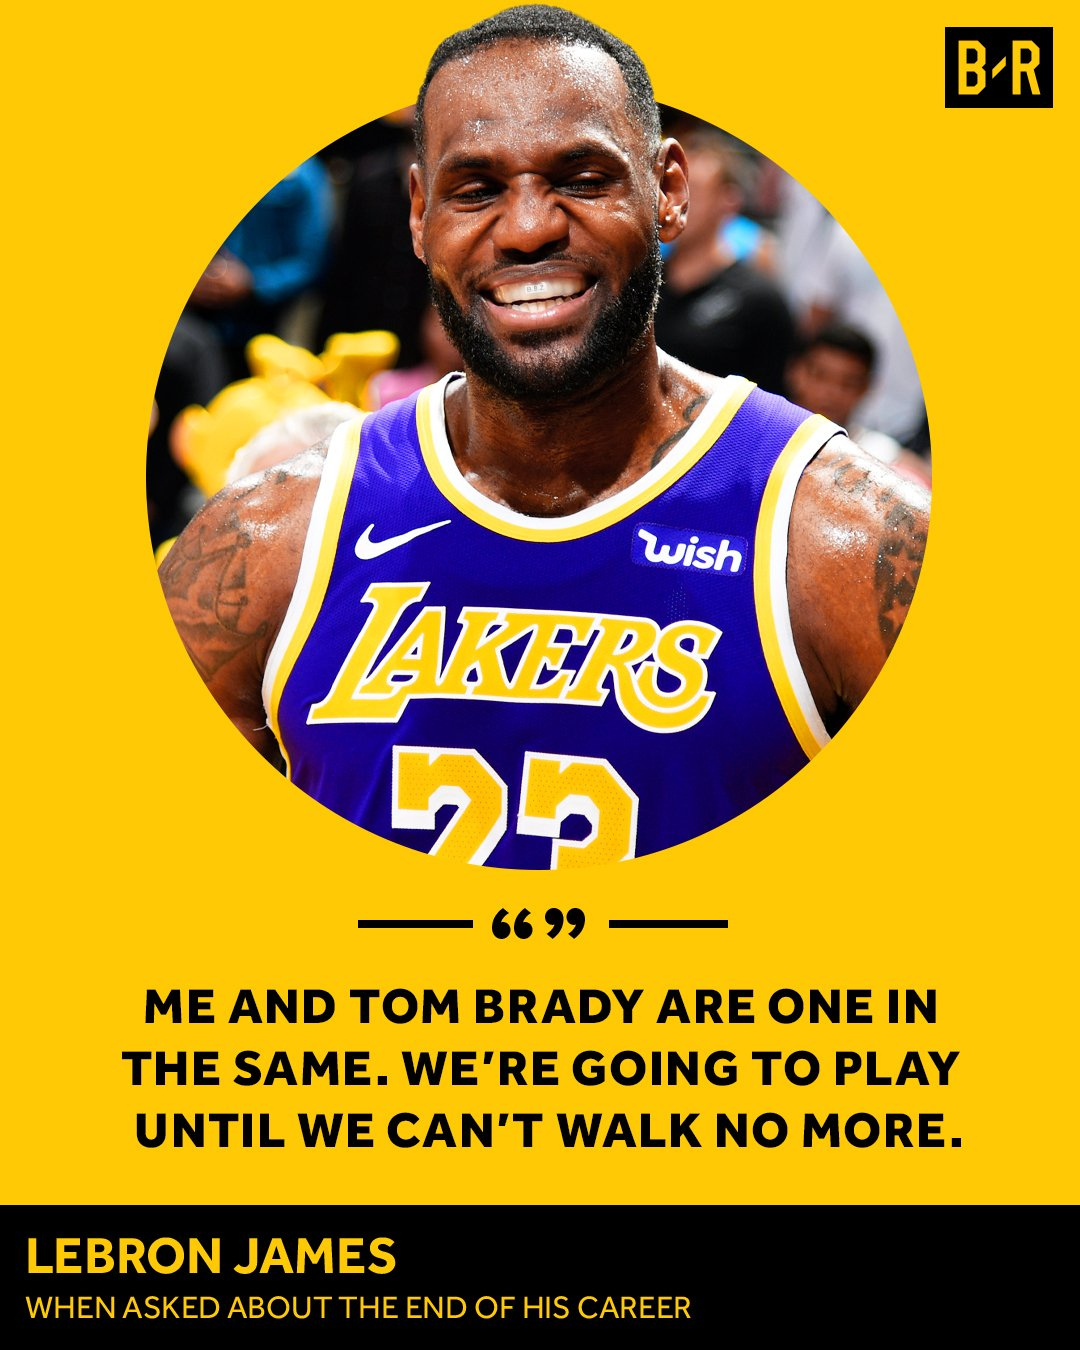 Tom Brady And LeBron James Are Absolutely Not One In The Same